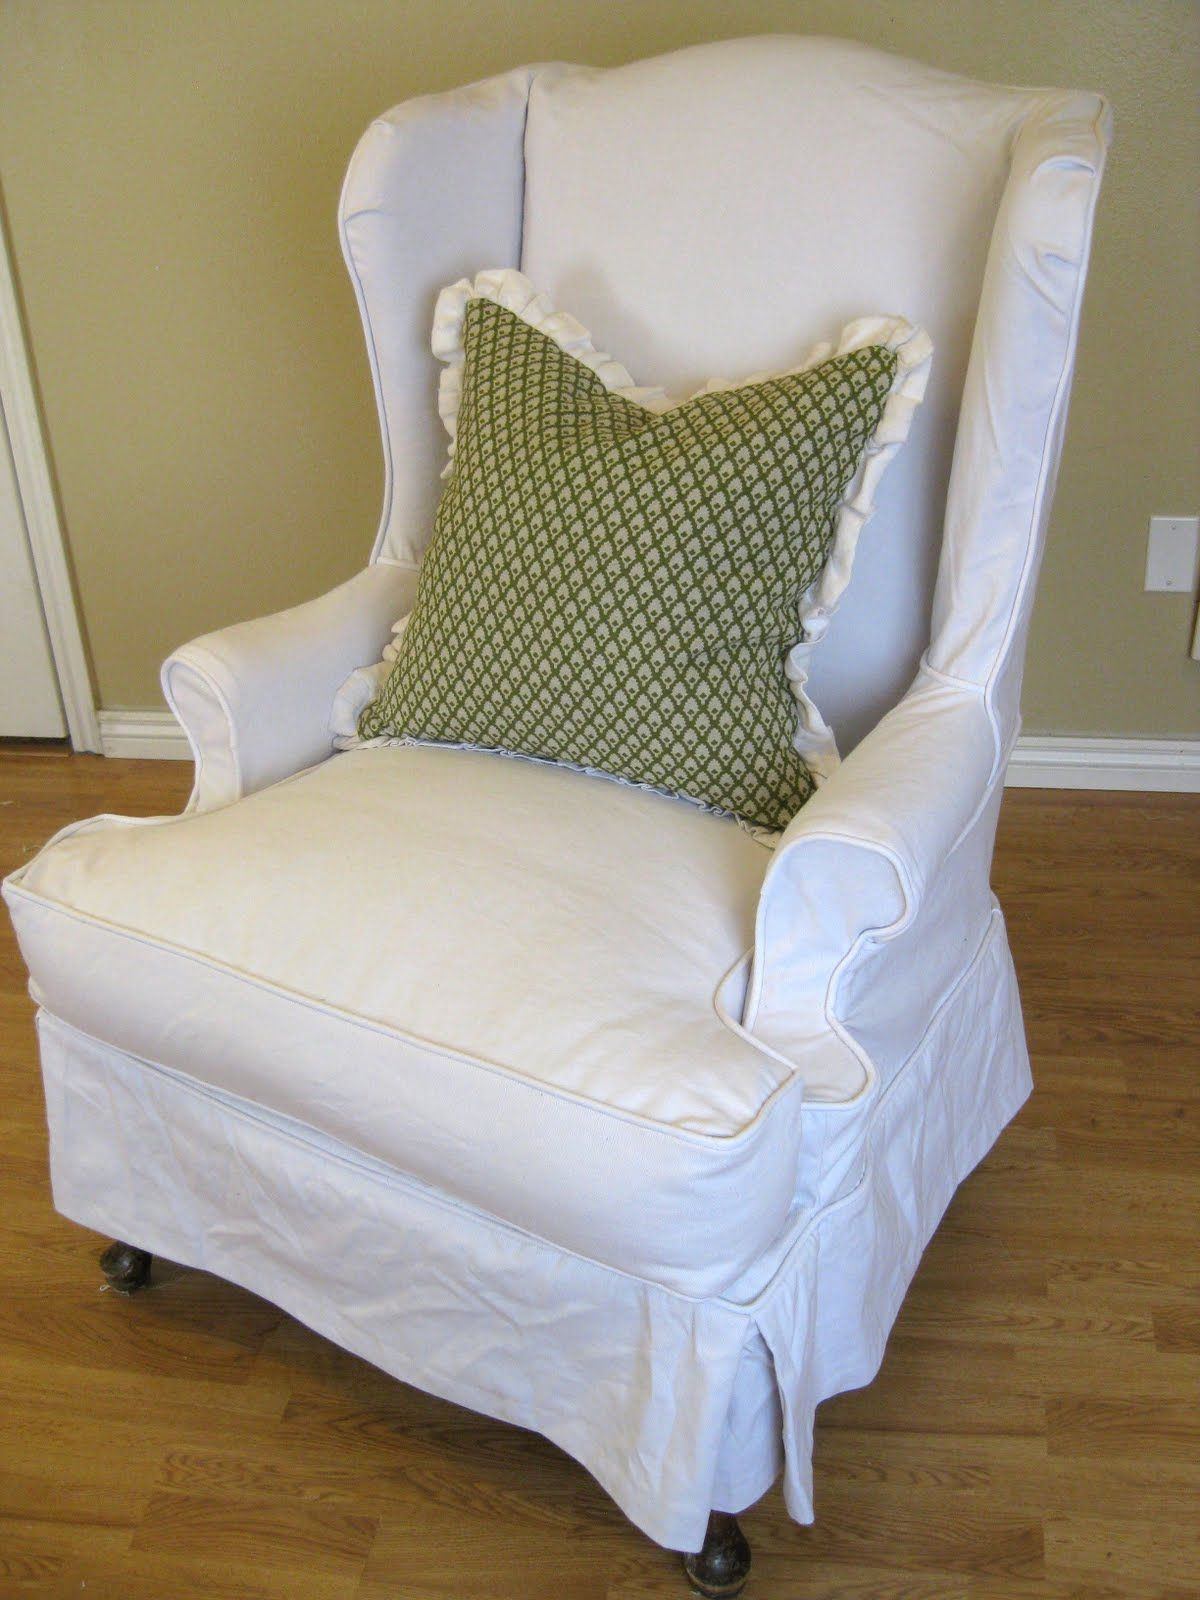 White Denim Wingback Chair Slipcovers For Chairs Wingback Chair